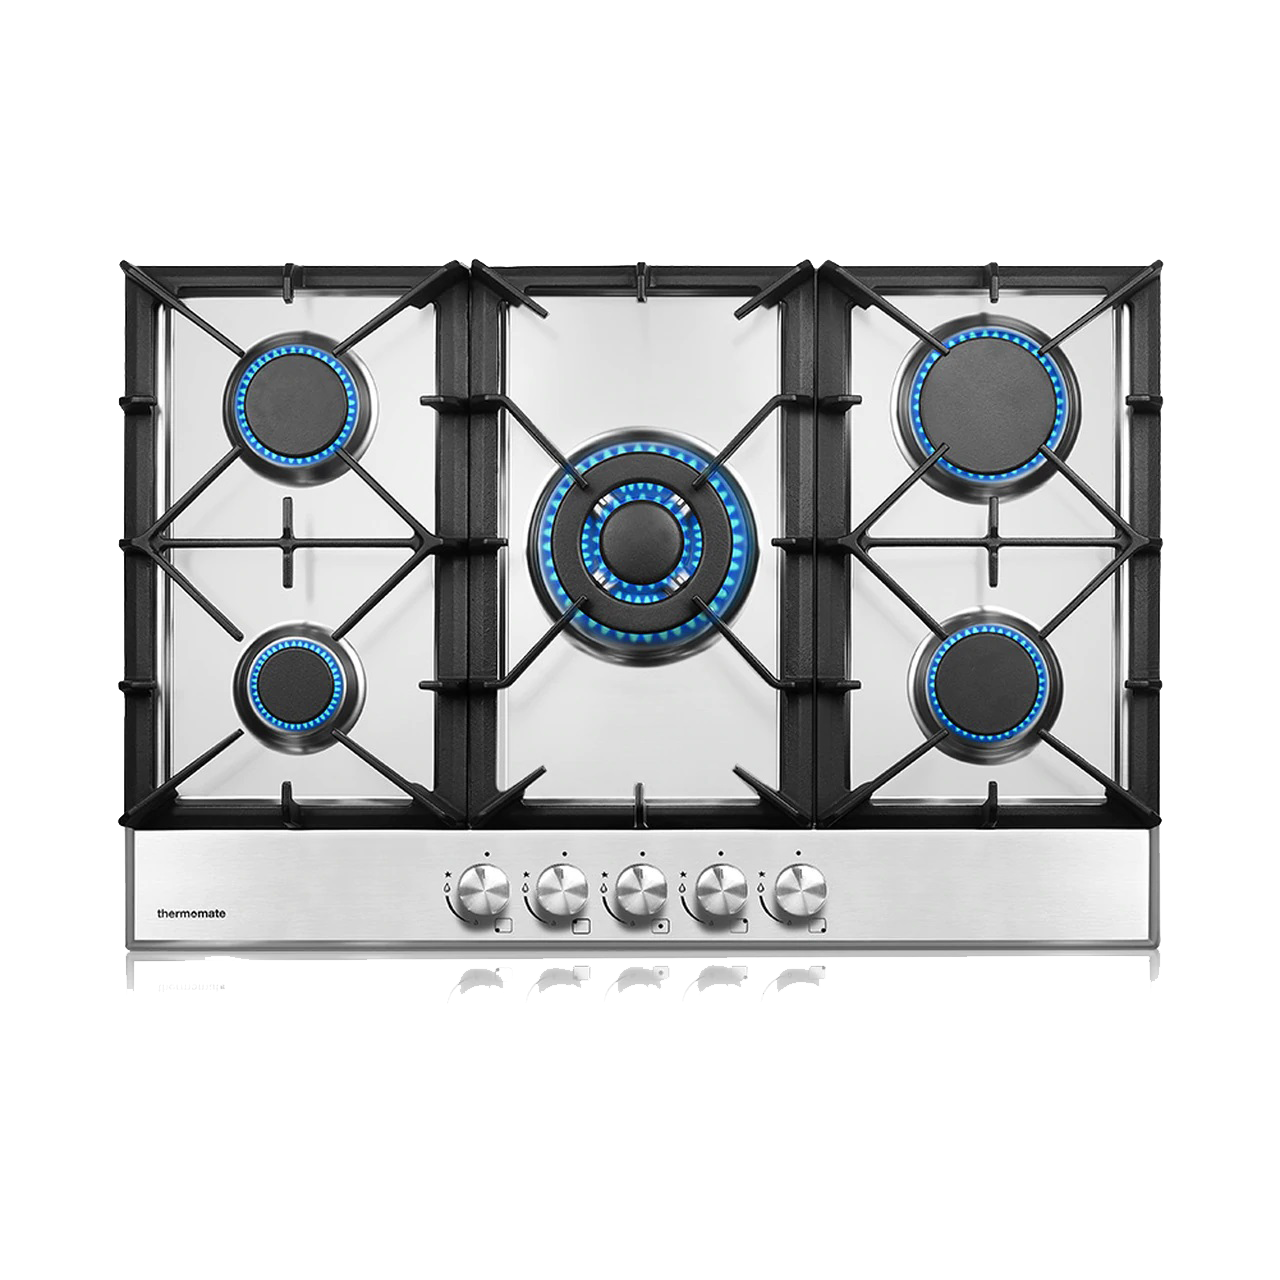 Thermomate Gas Cooktop 30 Inch Built-in Stainless Steel Gas Stove Top with 5 Burners